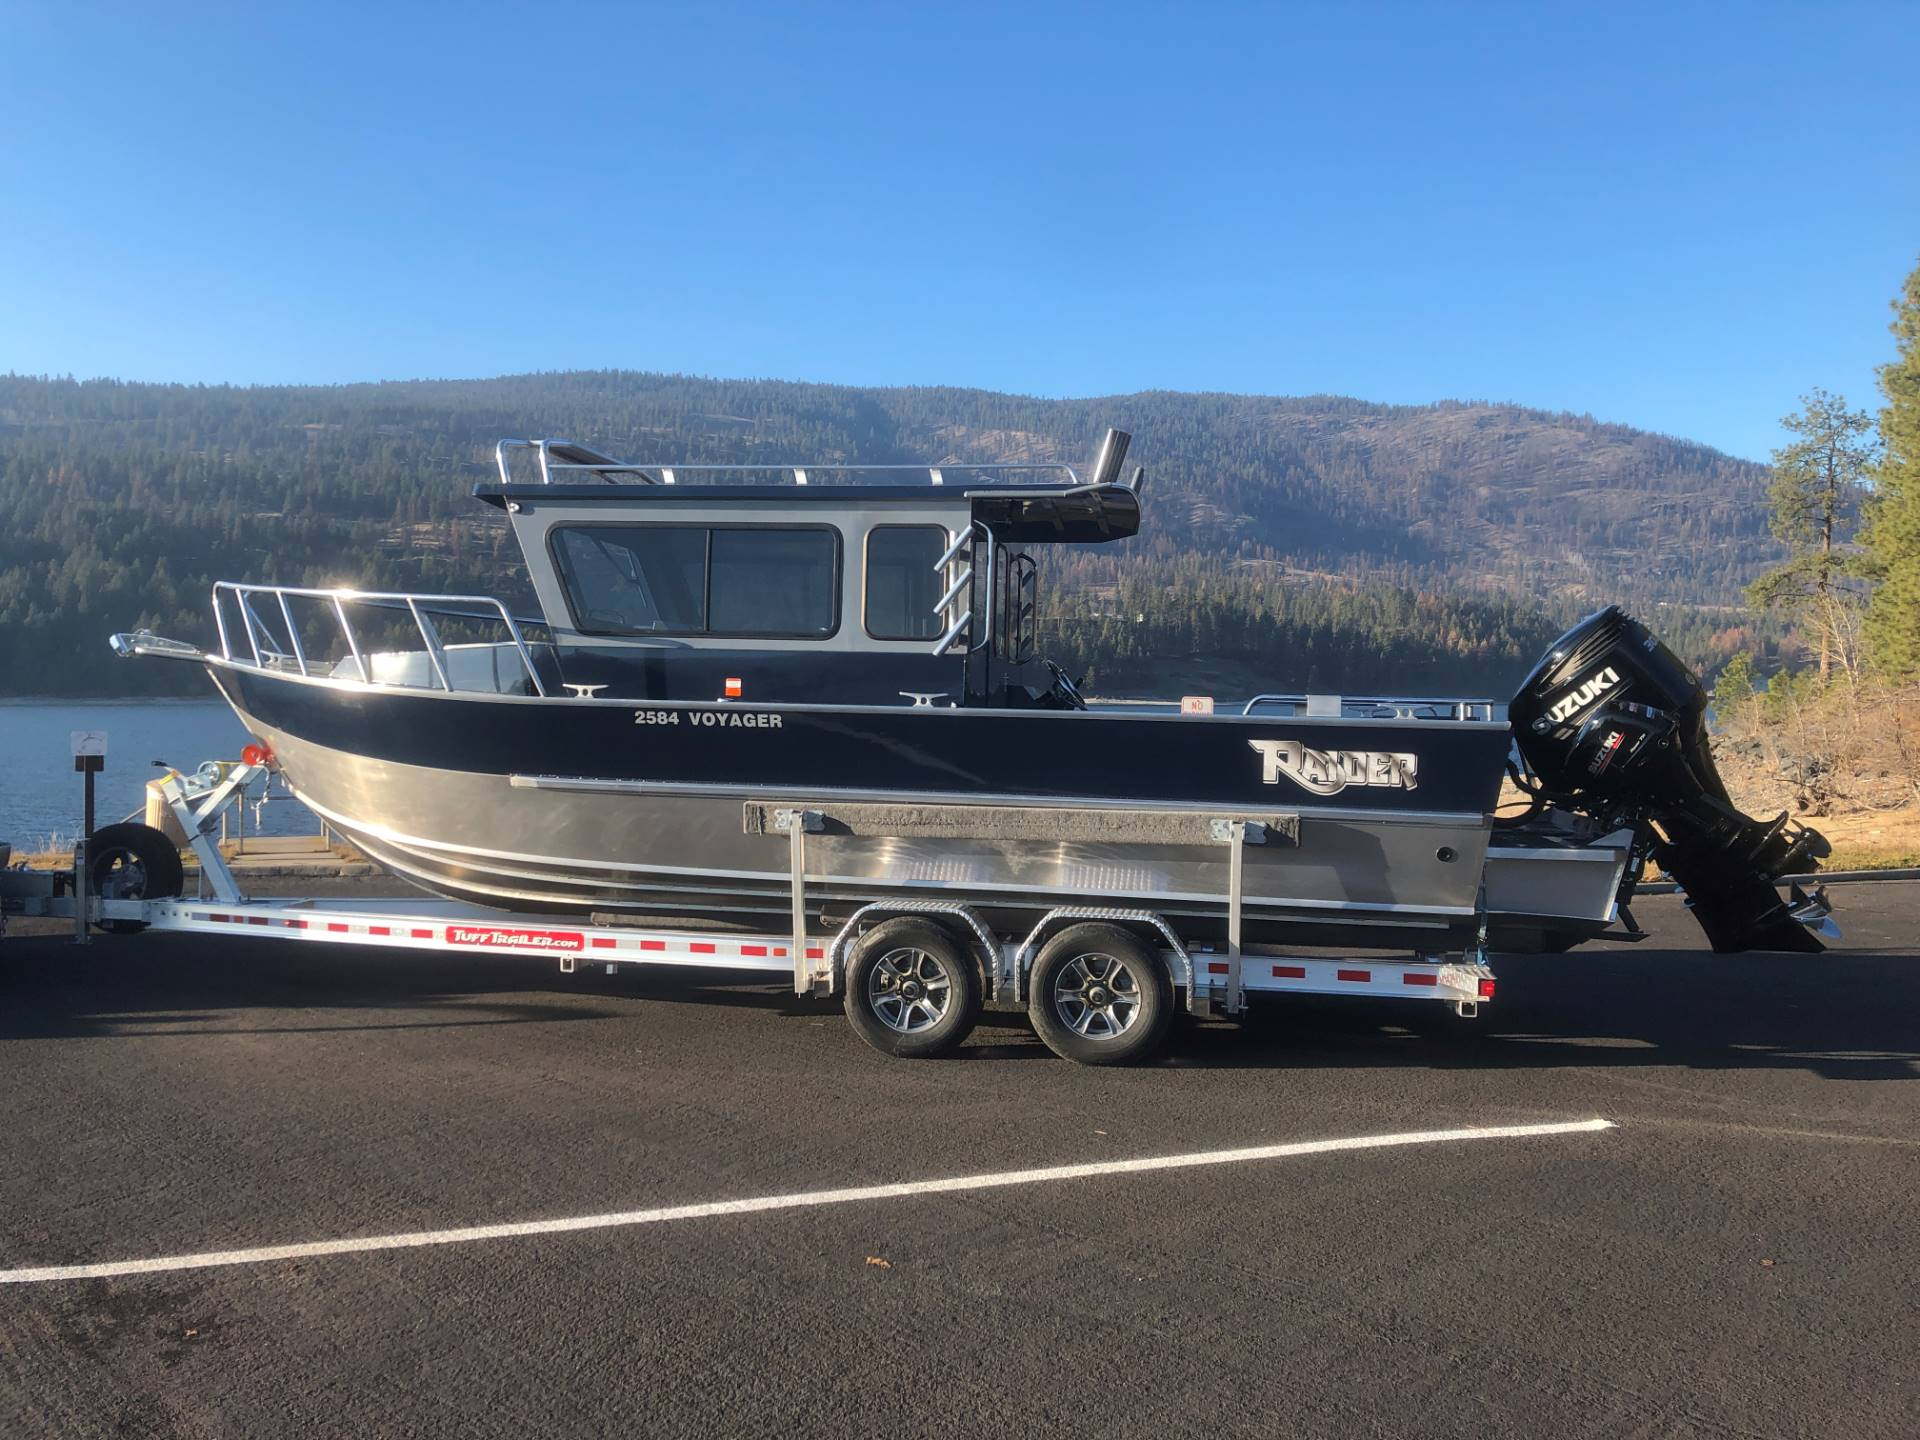 2020 Raider Boats 2584 Voyager SOLD!!!!!!! in Soldotna, Alaska